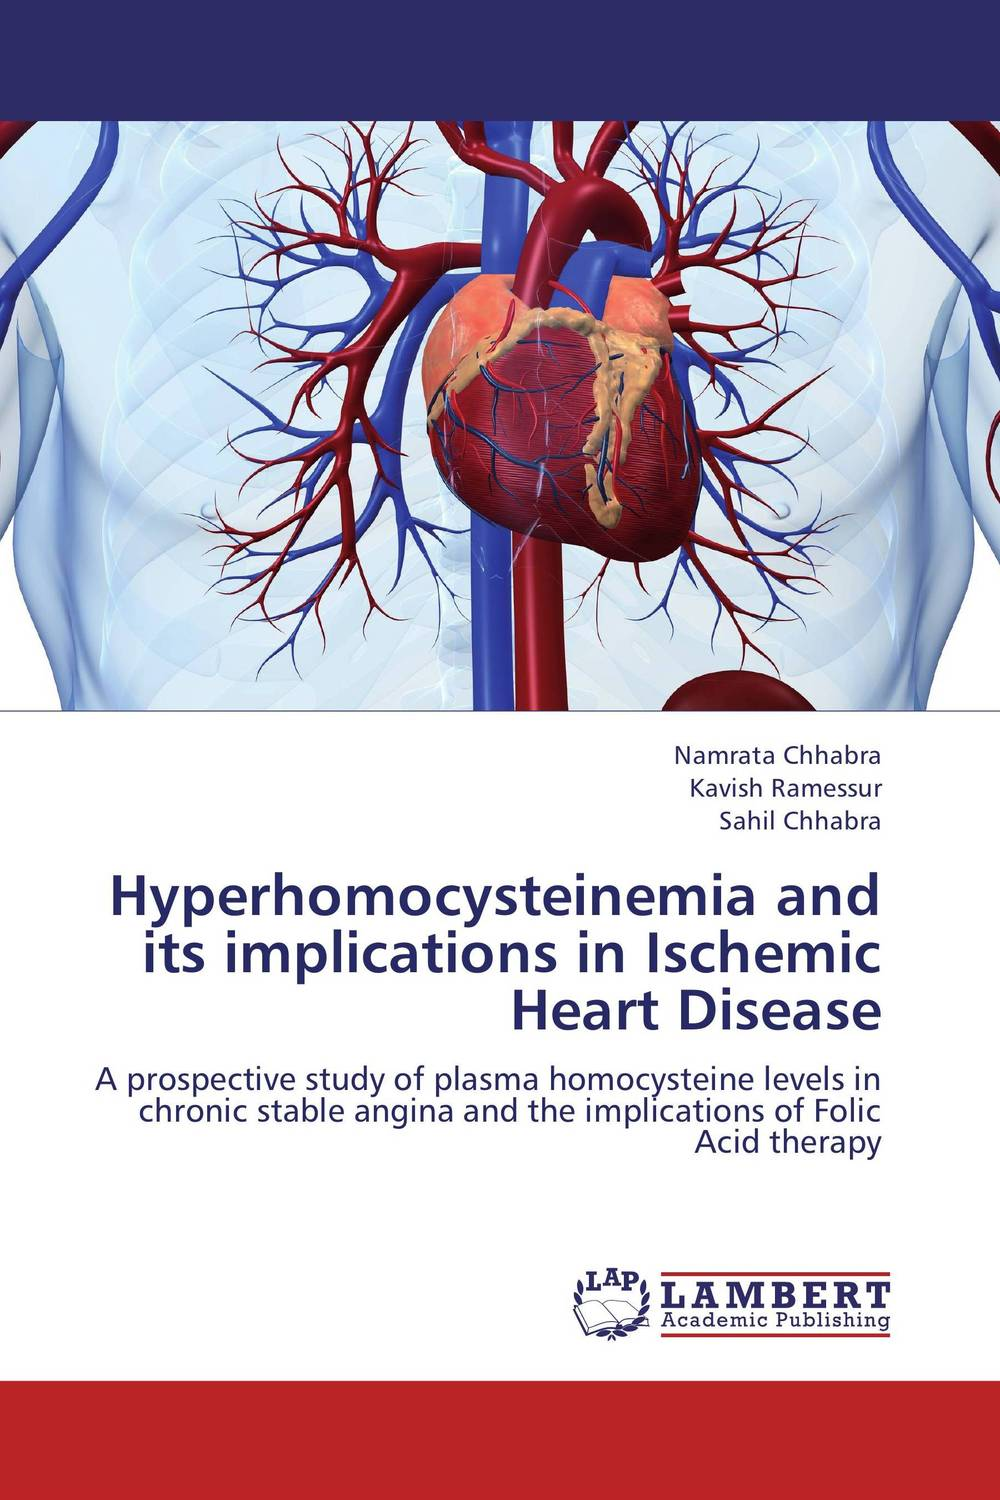 Hyperhomocysteinemia and its implications in Ischemic Heart Disease a prospective insight copd as potential risk factor for cvs disease